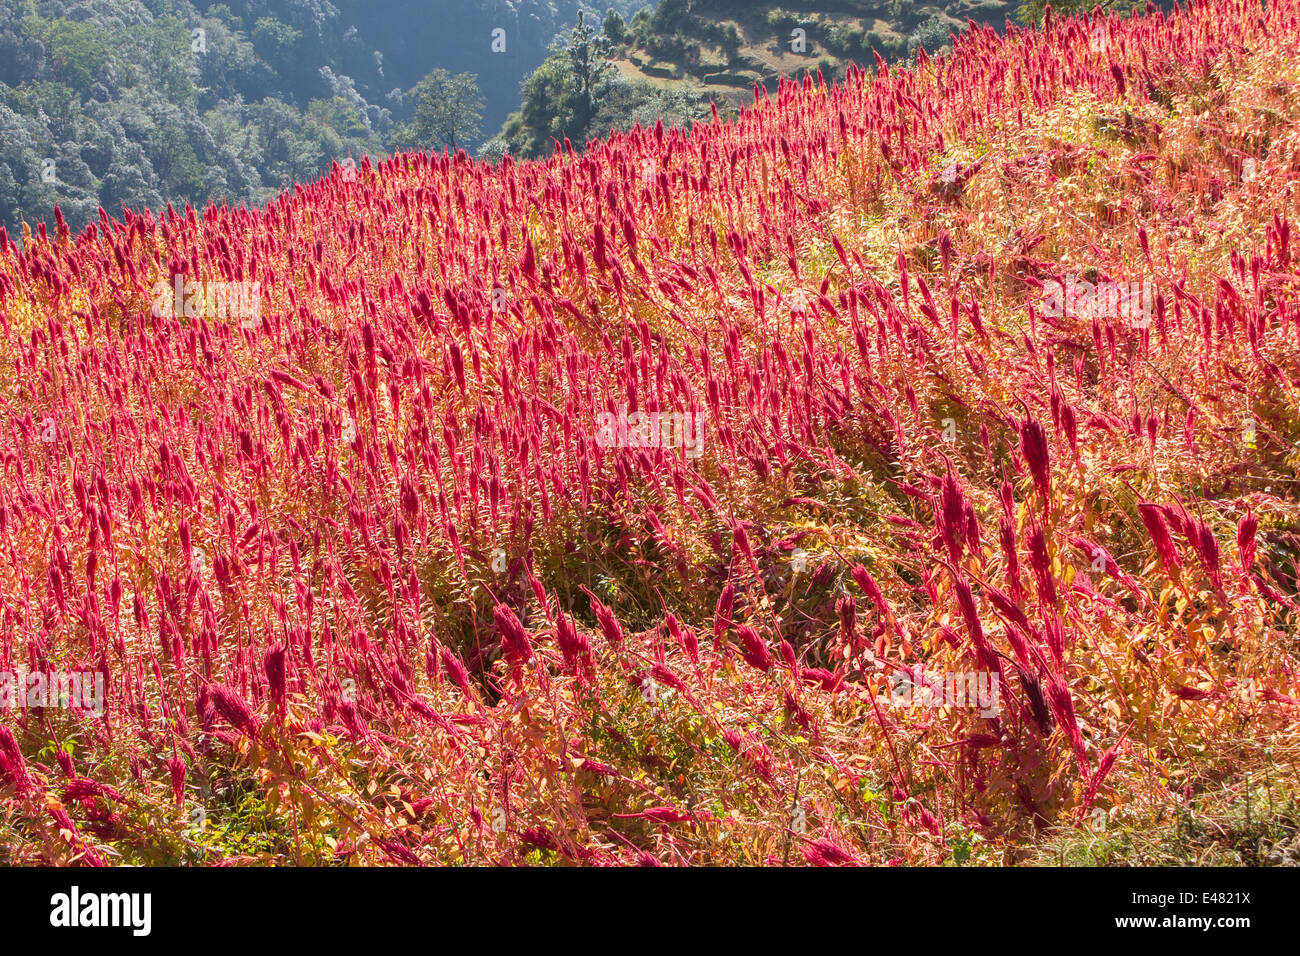 A field of amaranth on a Himalayan mountain, Uttarakhand, India. - Stock Image